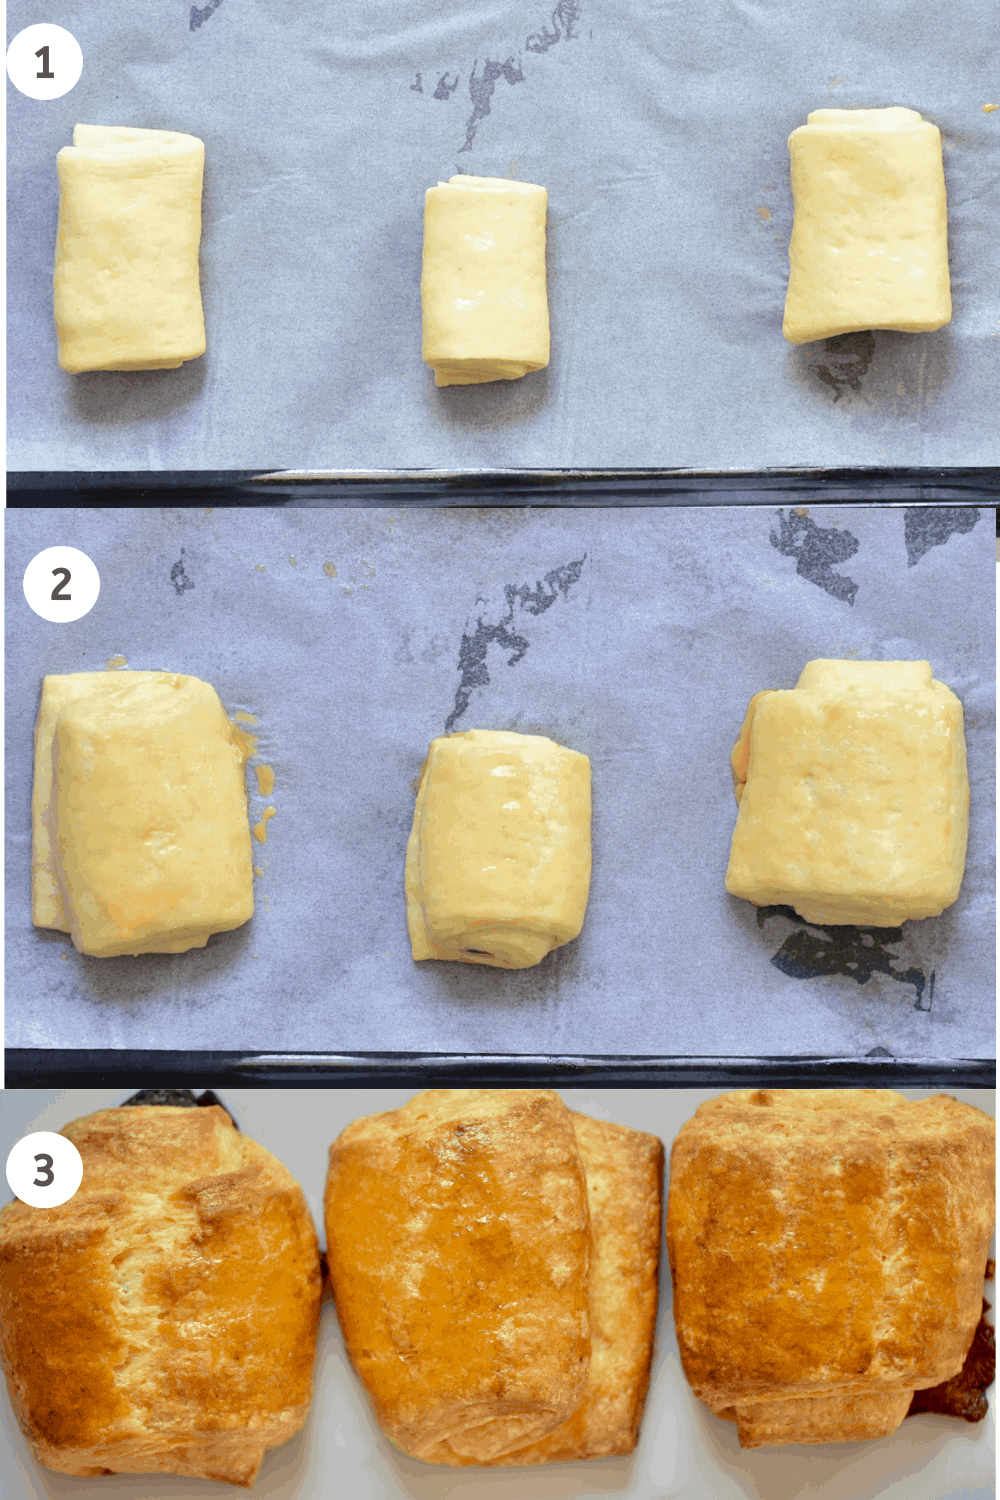 Chocolate filled croissants - making